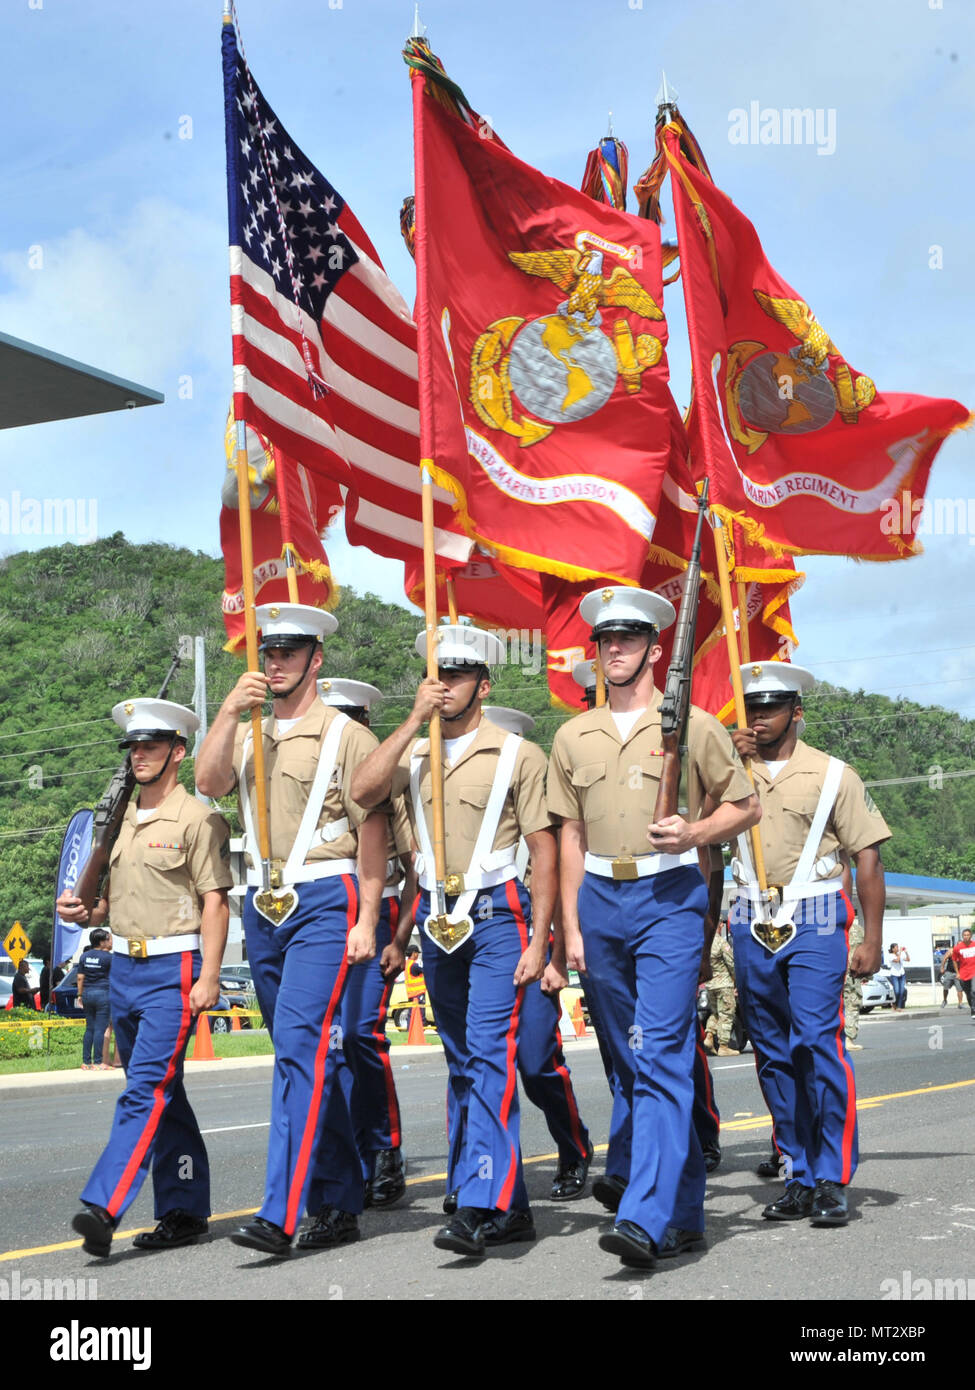 170721-N-ZD021-194  HAGATNA, Guam (July 21, 2017) A color guard from the Third Marine Division, based in Okinawa, Japan, marches during Guam's annual Liberation Day Parade in Hagatna, Guam, July 21. The 2017 Guam Liberation Parade celebrates the 73rd anniversary of the liberation of Guam from Japanese occupation by U.S. forces during World War II. (U.S. Navy photo by Mass Communication Specialist 3rd Class Daniel Willoughby/Released) - Stock Image